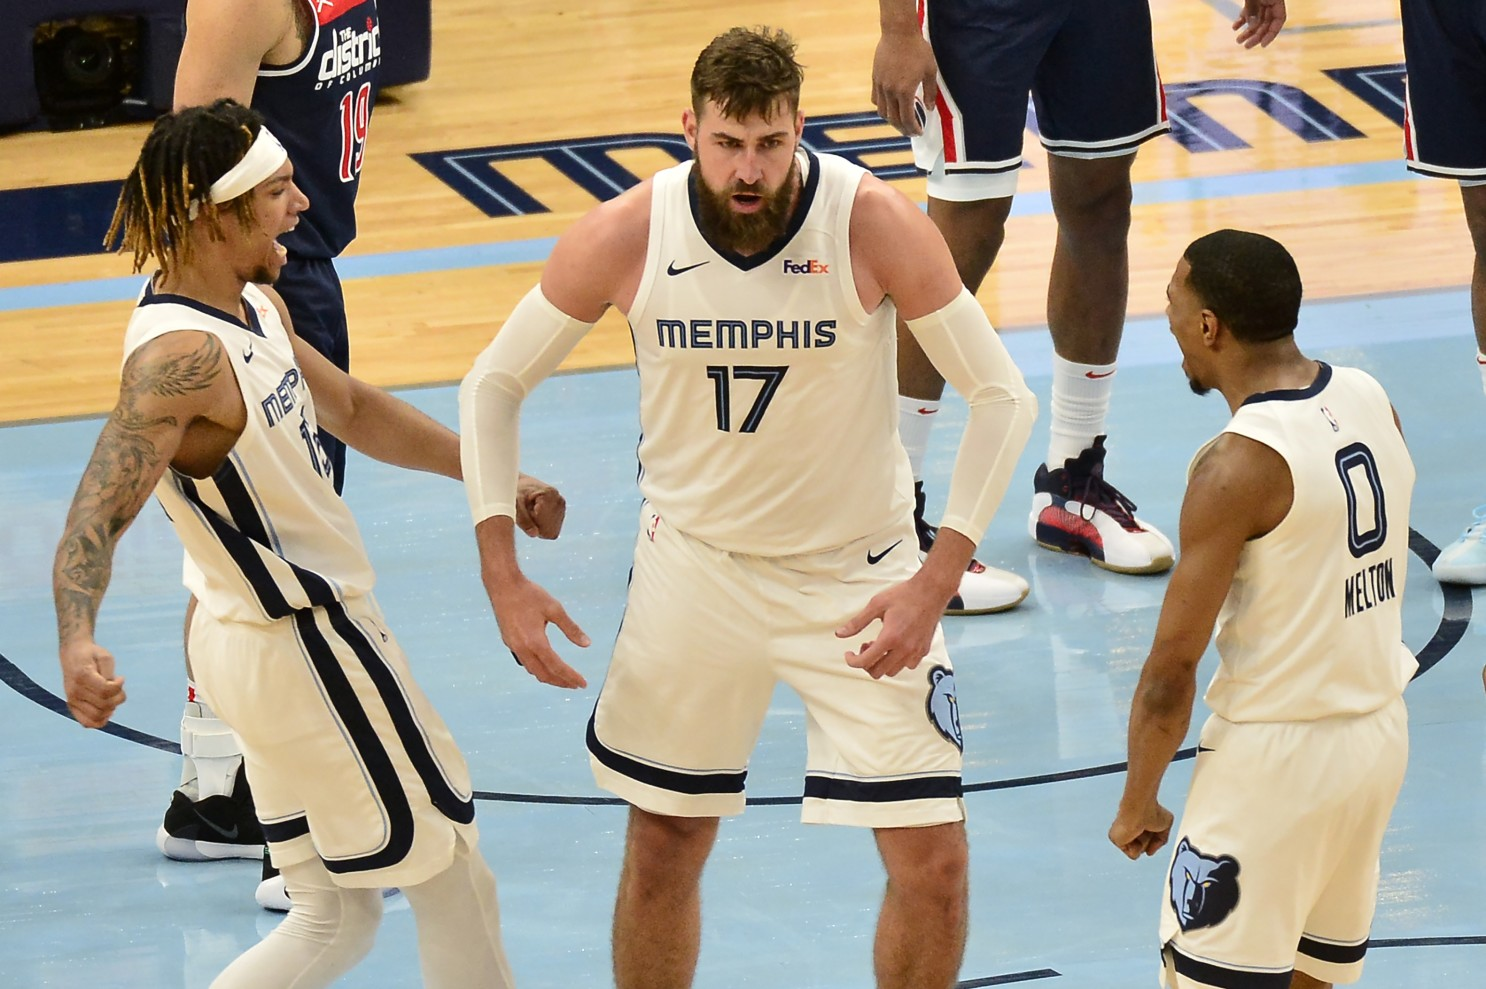 Memphis Grizzlies center Jonas Valanciunas (17) reacts with teammates Brandon Clarke (15) and De'Anthony Melton (0) after scoring in the second half of an NBA basketball game against the Washington Wizards Wednesday, March 10, 2021, in Memphis, Tenn. (AP Photo/Brandon Dill)